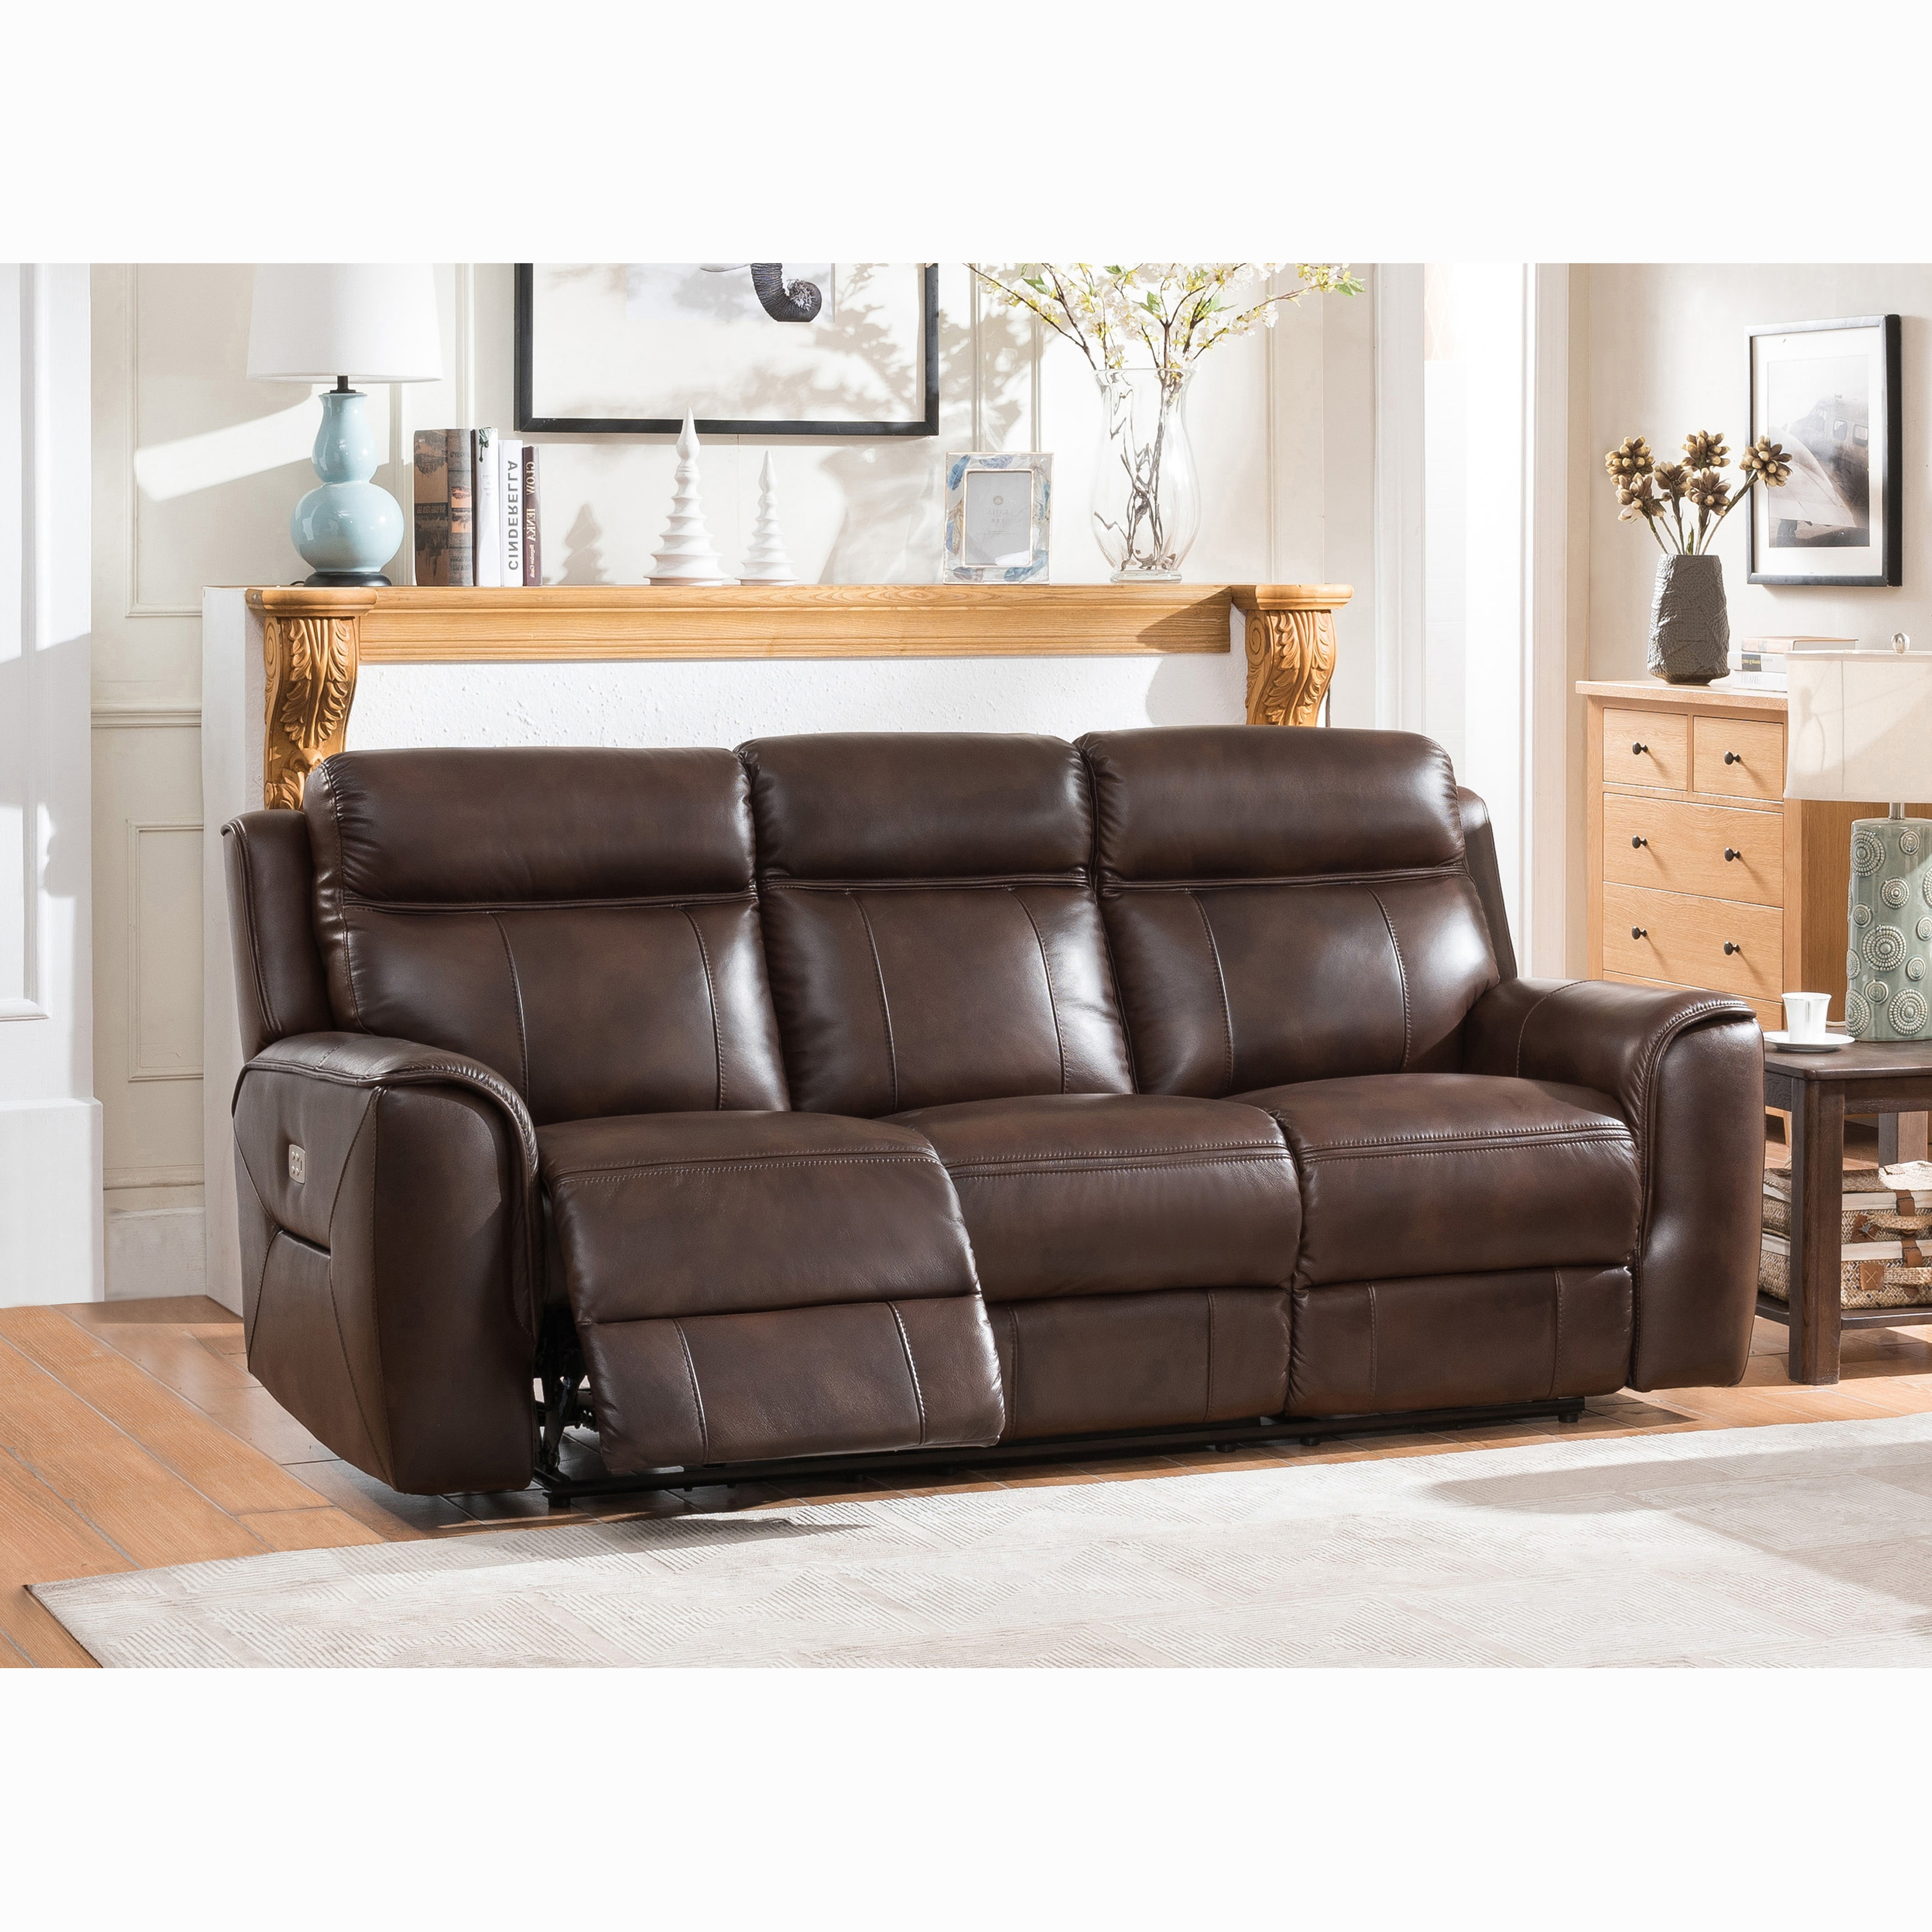 design adjustable item transister power sofa products match ashley reclining signature w headrest leather number recliner by